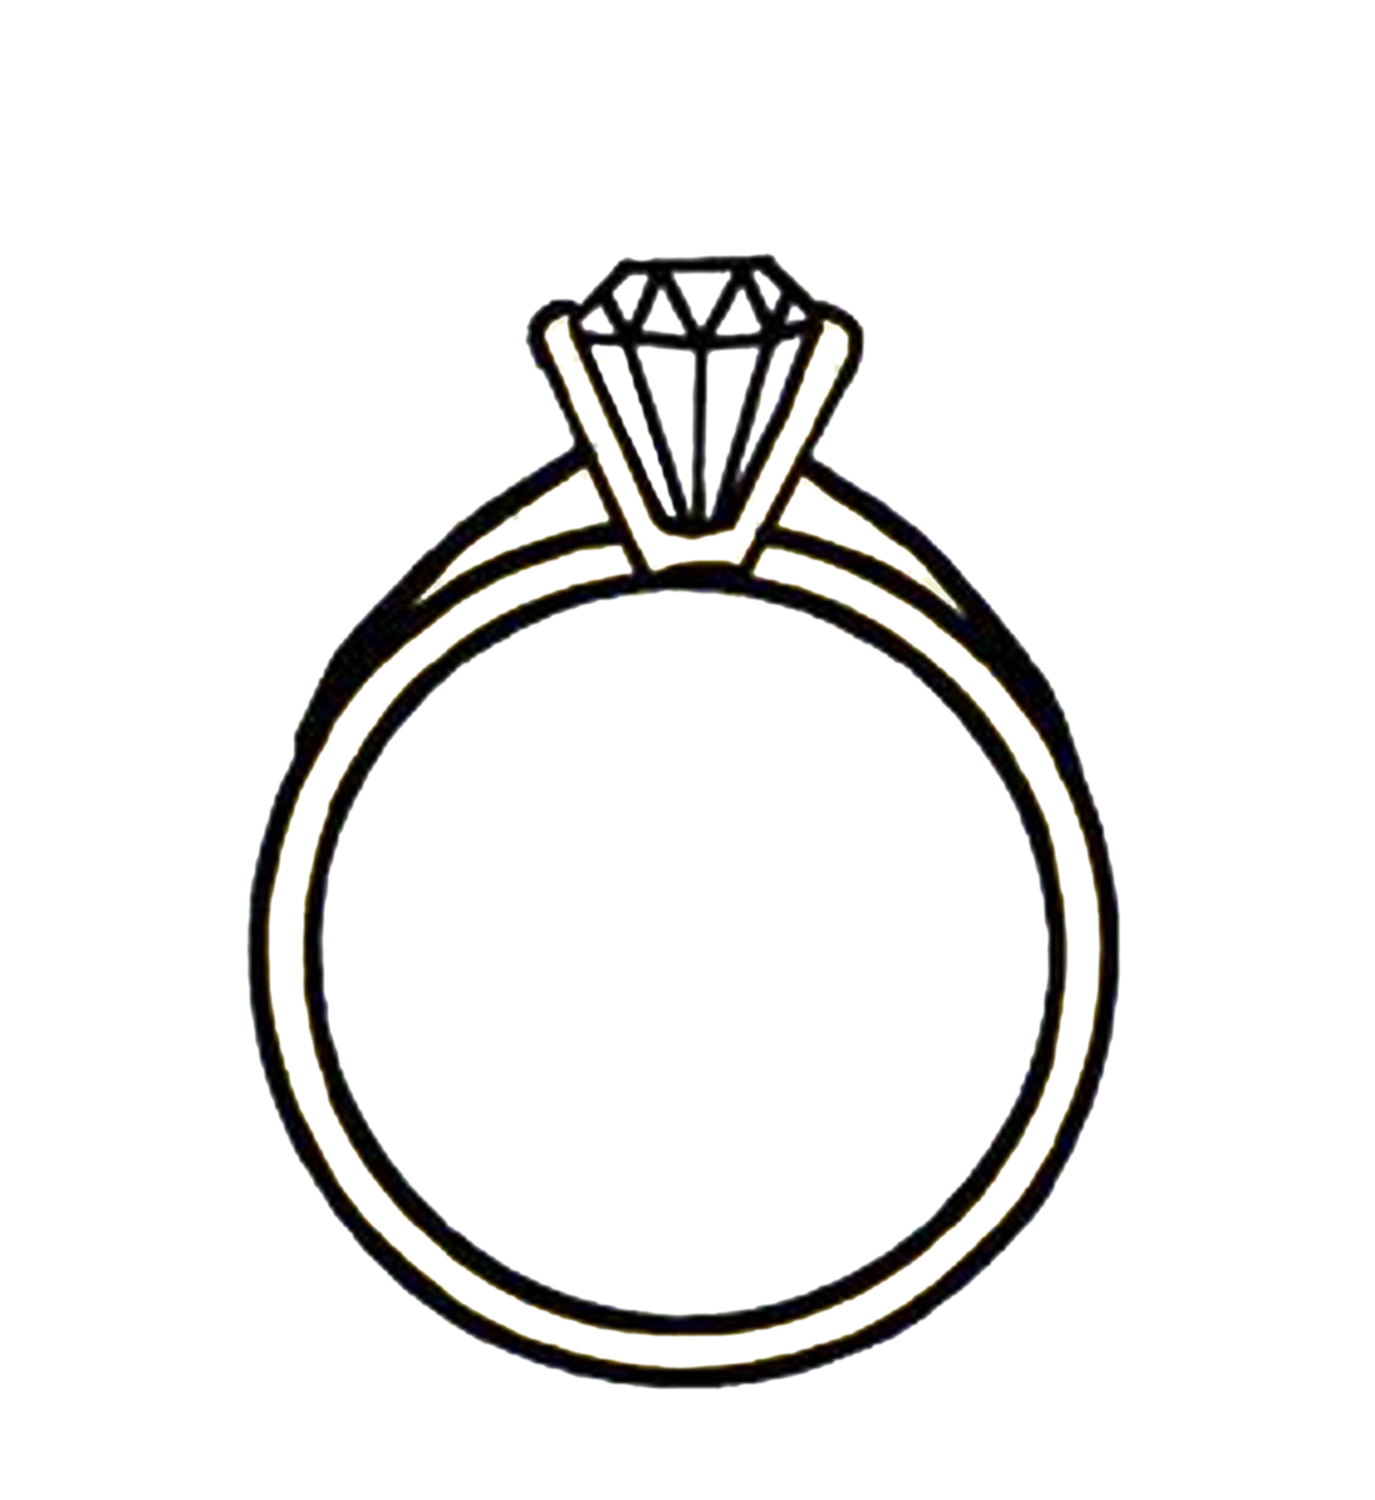 Diamond Ring Clipart Clipart Panda Free -Diamond Ring Clipart Clipart Panda Free Clipart Images-5